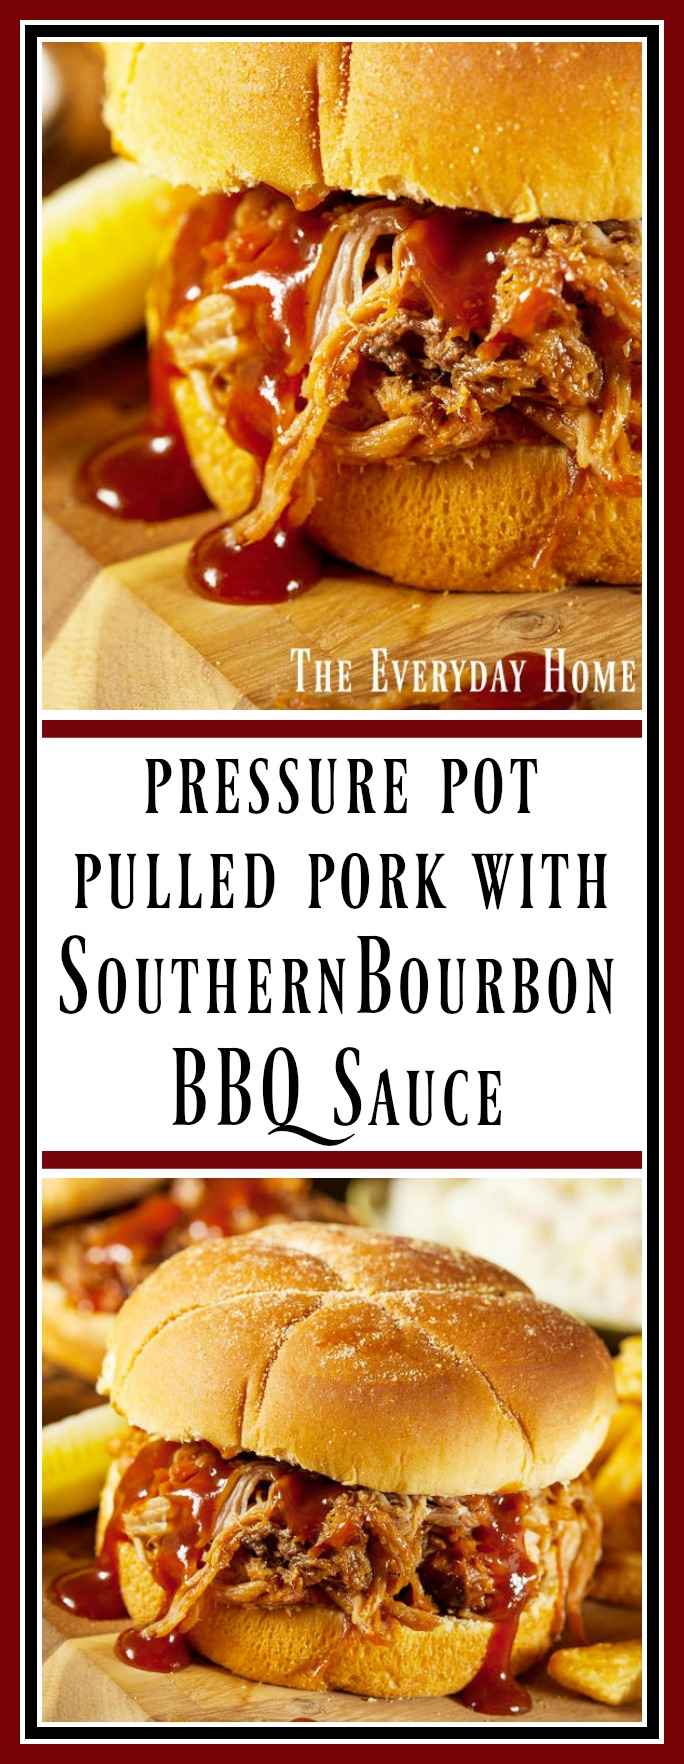 Pulled Pork with Southern Bourbon BBQ Sauce || The Everyday Home || www.everydayhomeblog.com